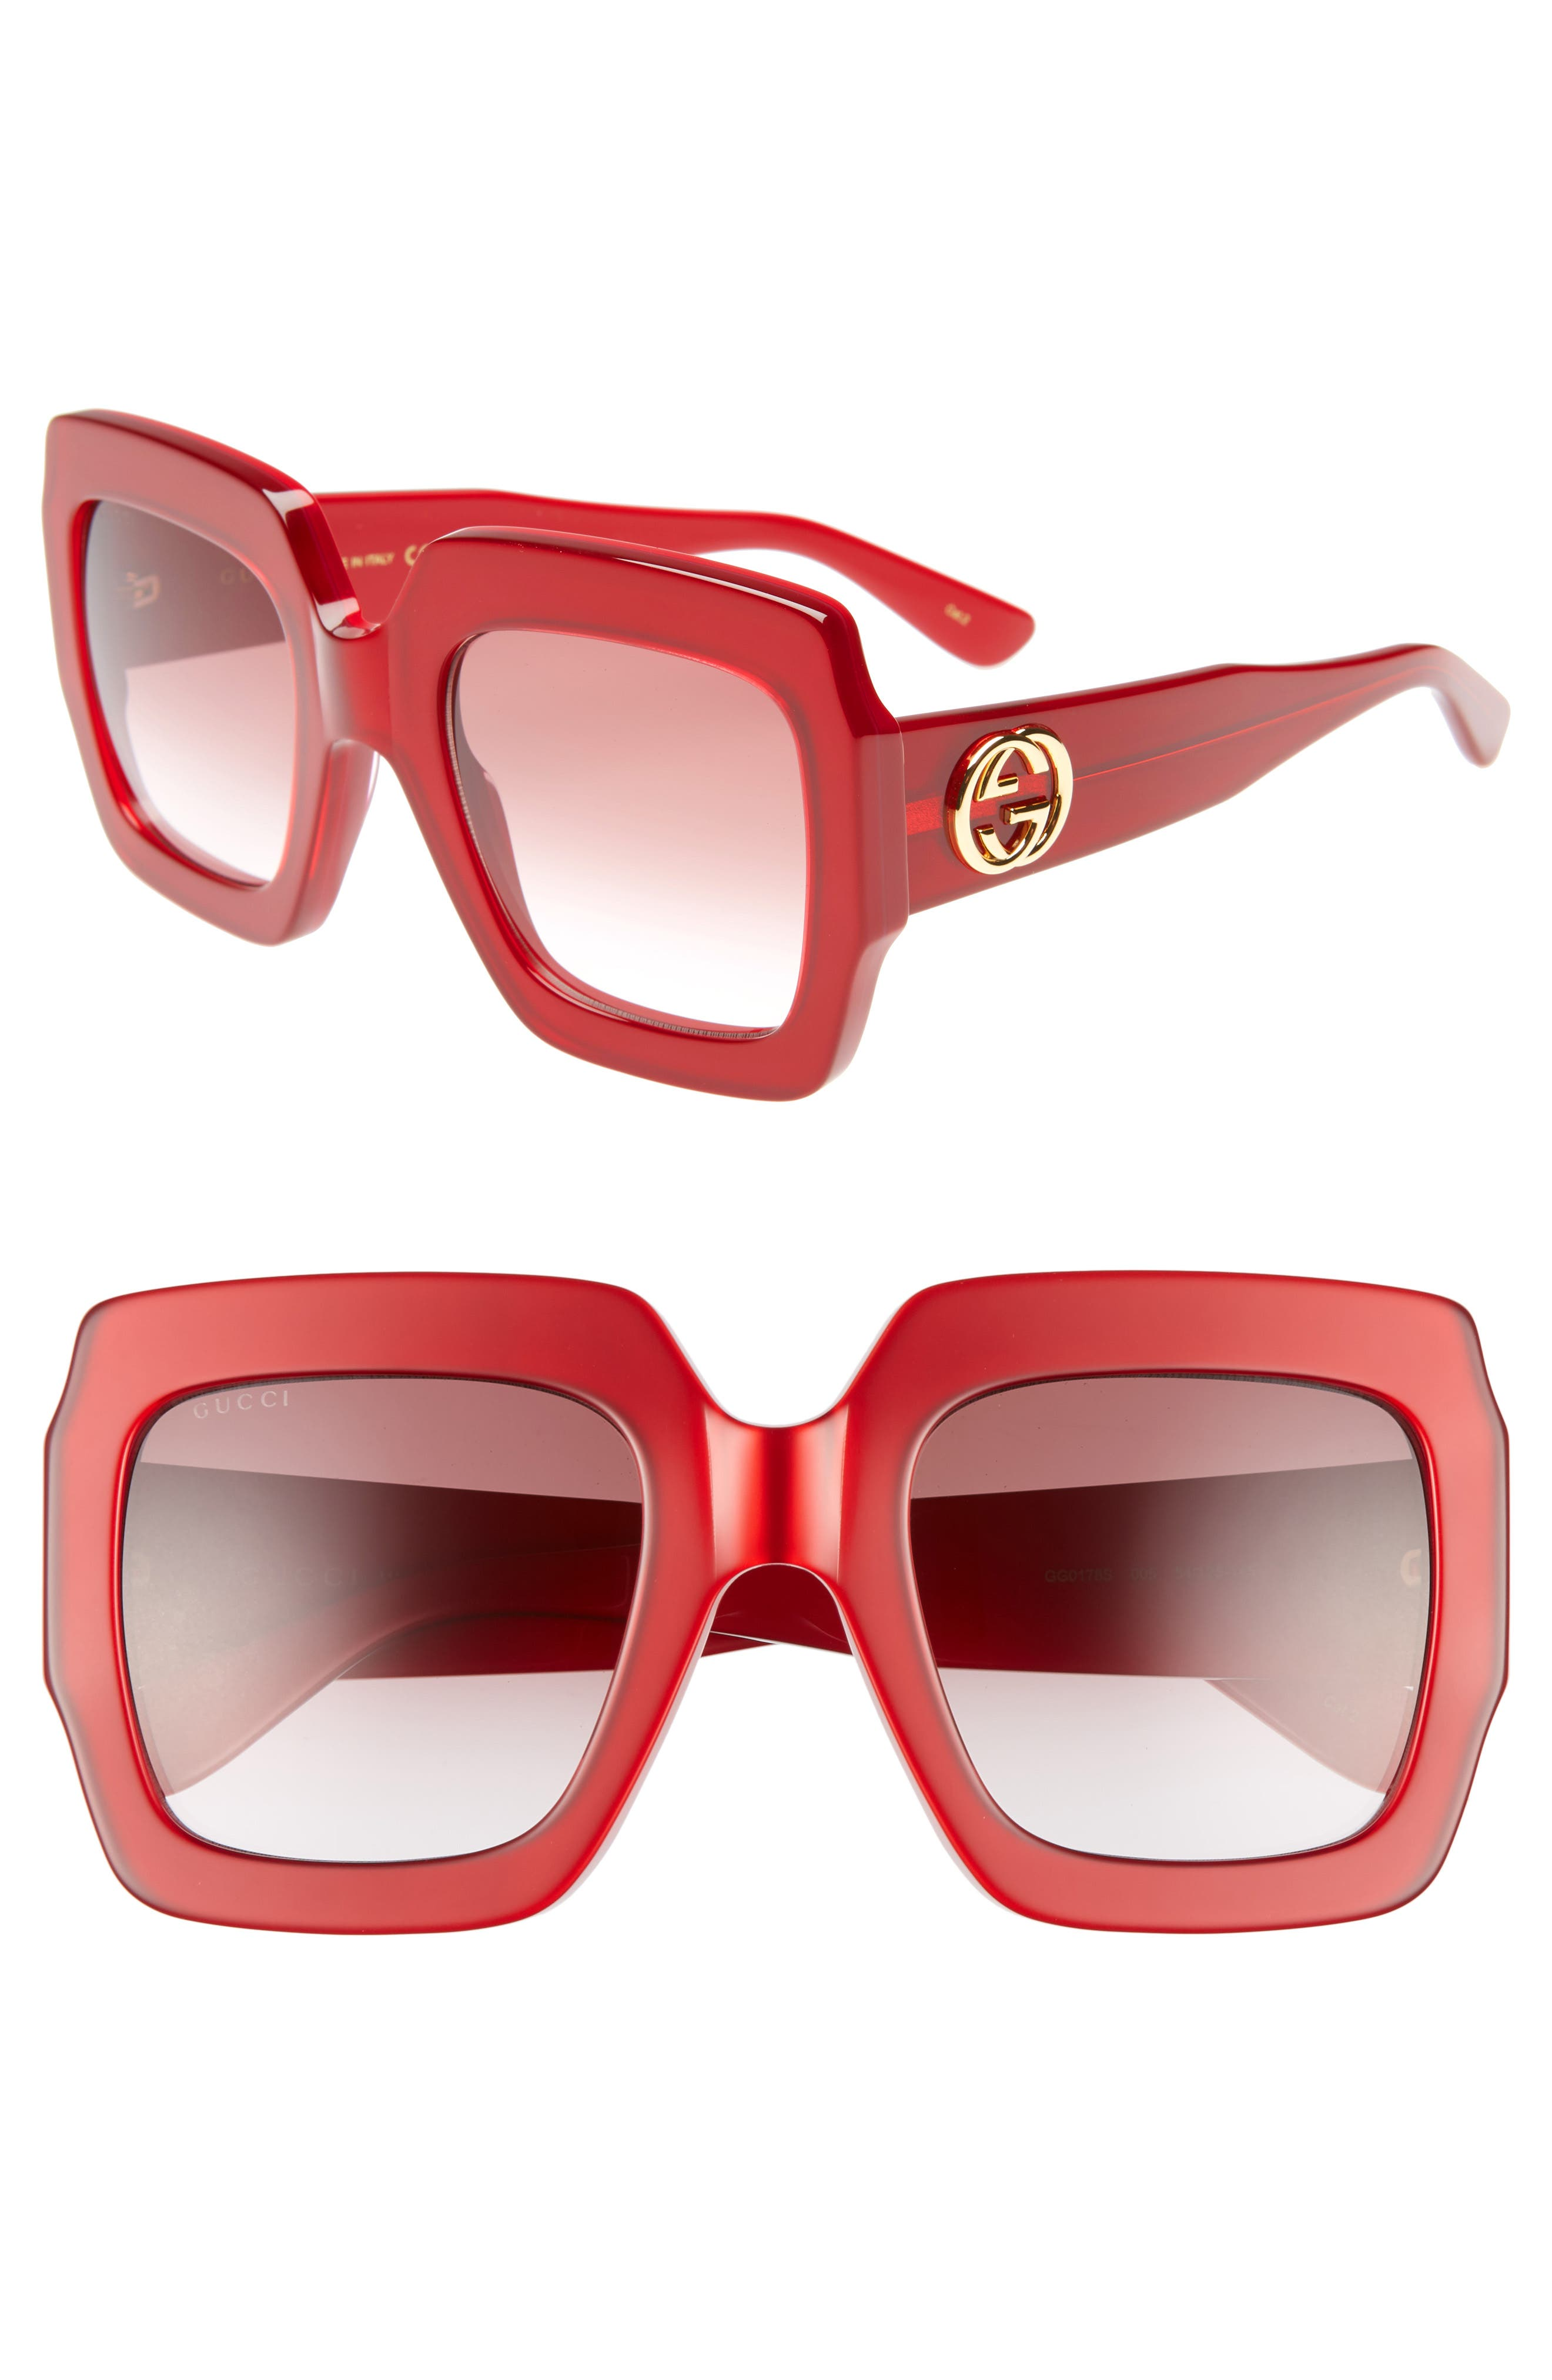 Gucci 5m Square Sunglasses - Shny Mltilay Glossy Red/ Red